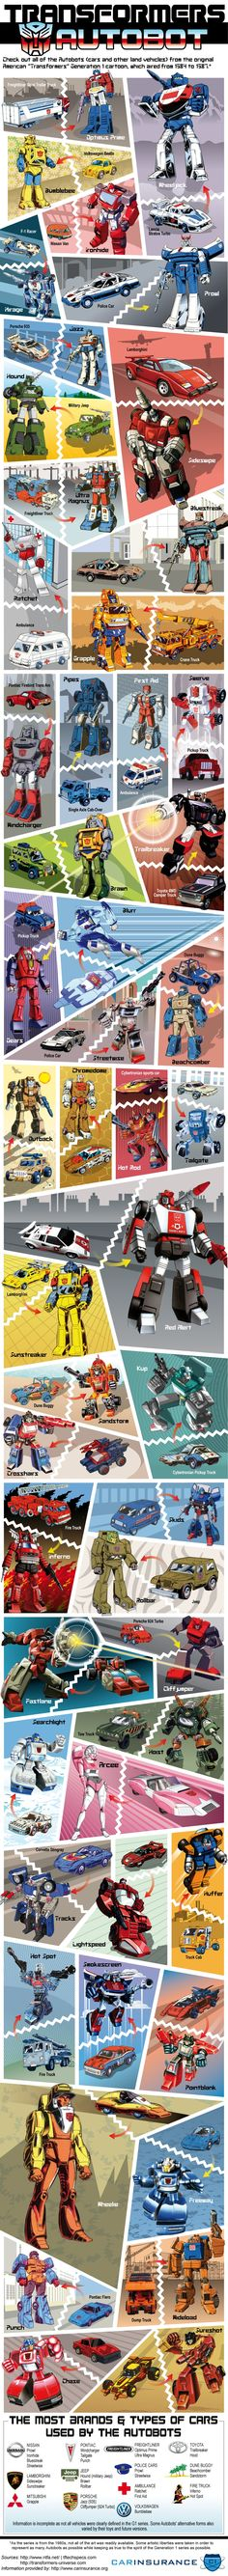 Transformers-autobots. #infografia #infographic